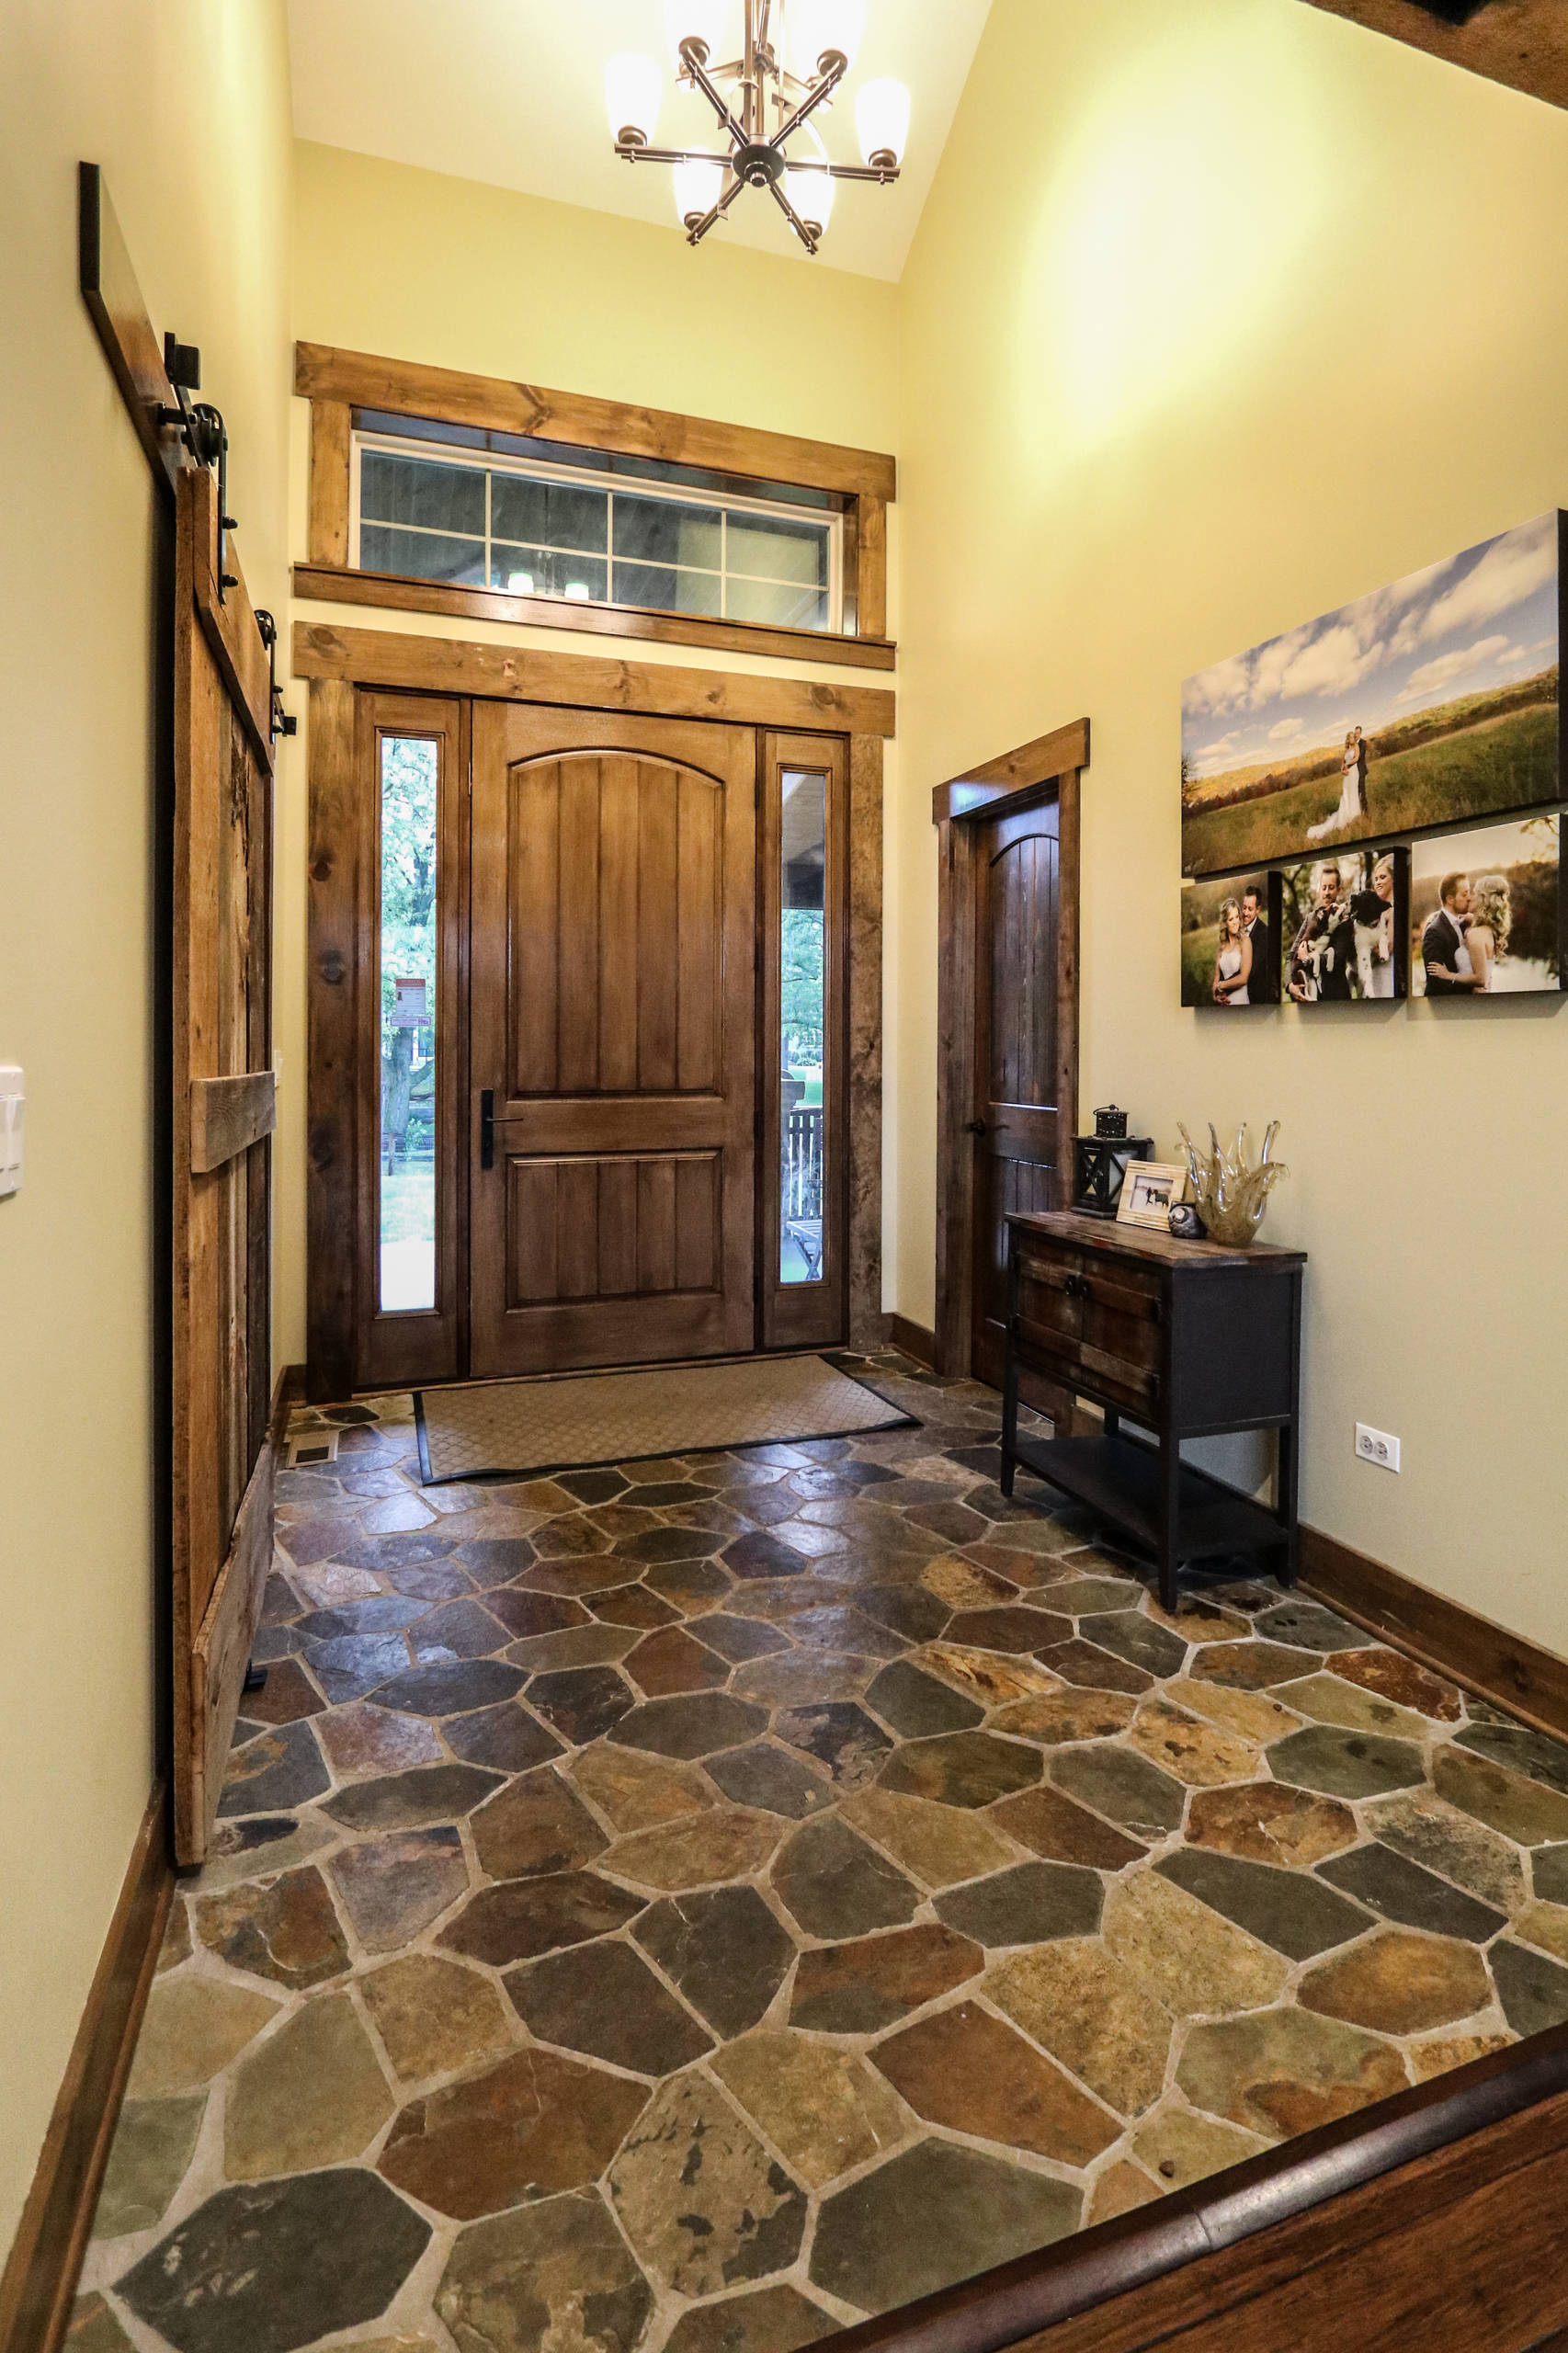 15 welcoming rustic entry hall designs you 39 re going to adore. Black Bedroom Furniture Sets. Home Design Ideas